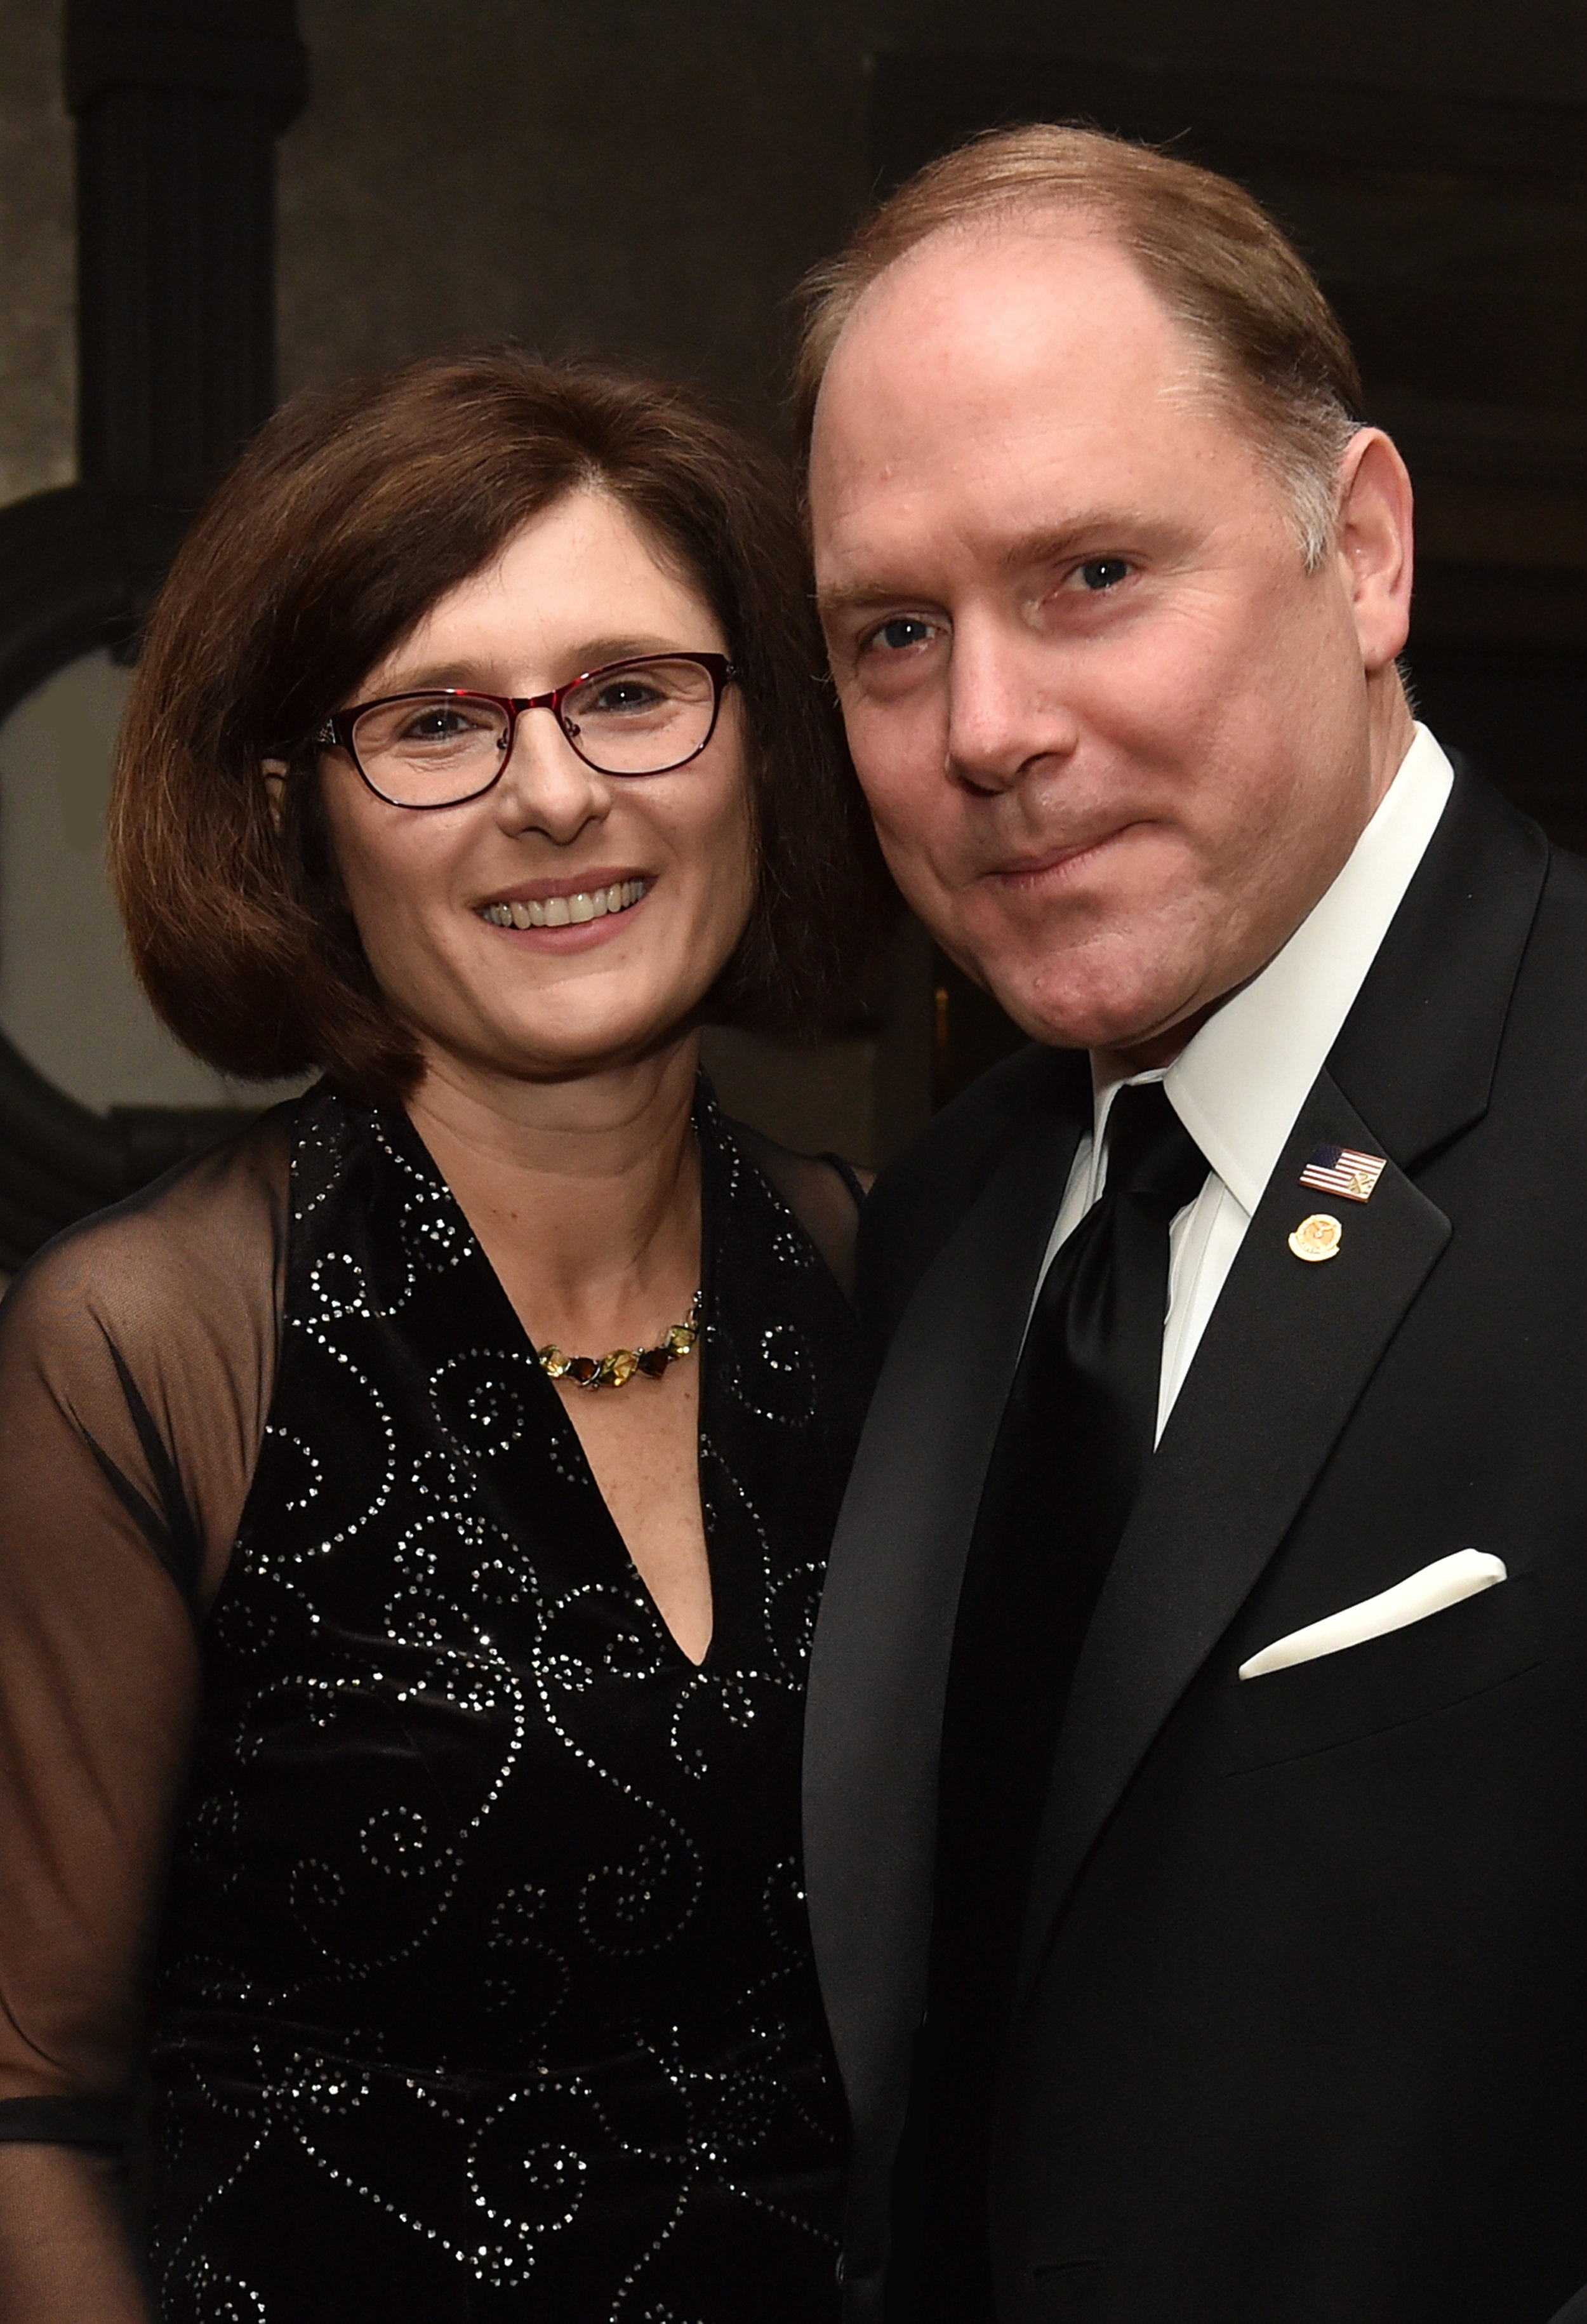 Carl Hollister, Supreme President of the Order of AHEPA and his wife.